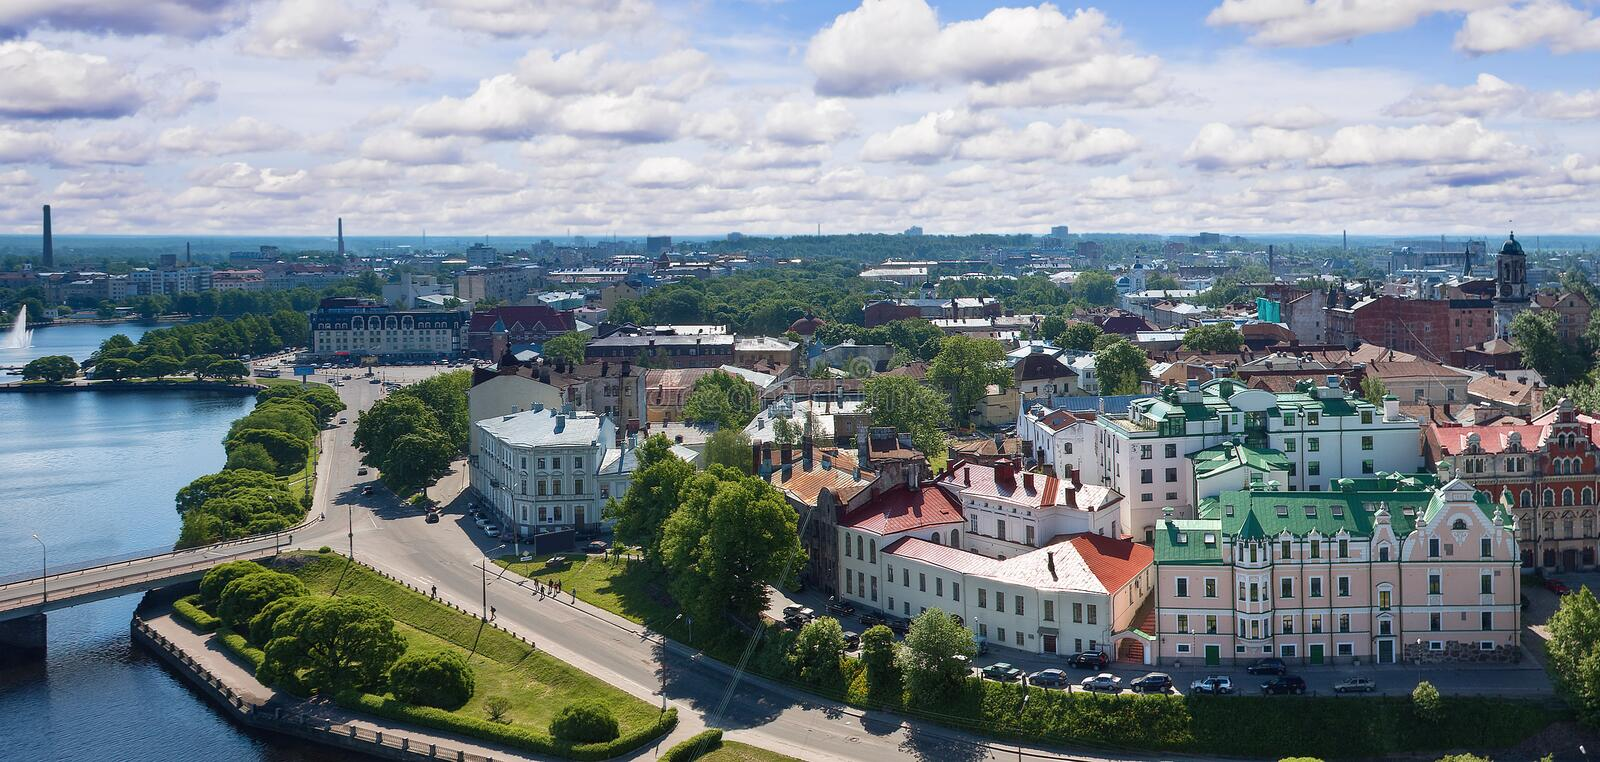 View from the Tower of Olaf the old town of Vyborg stock image